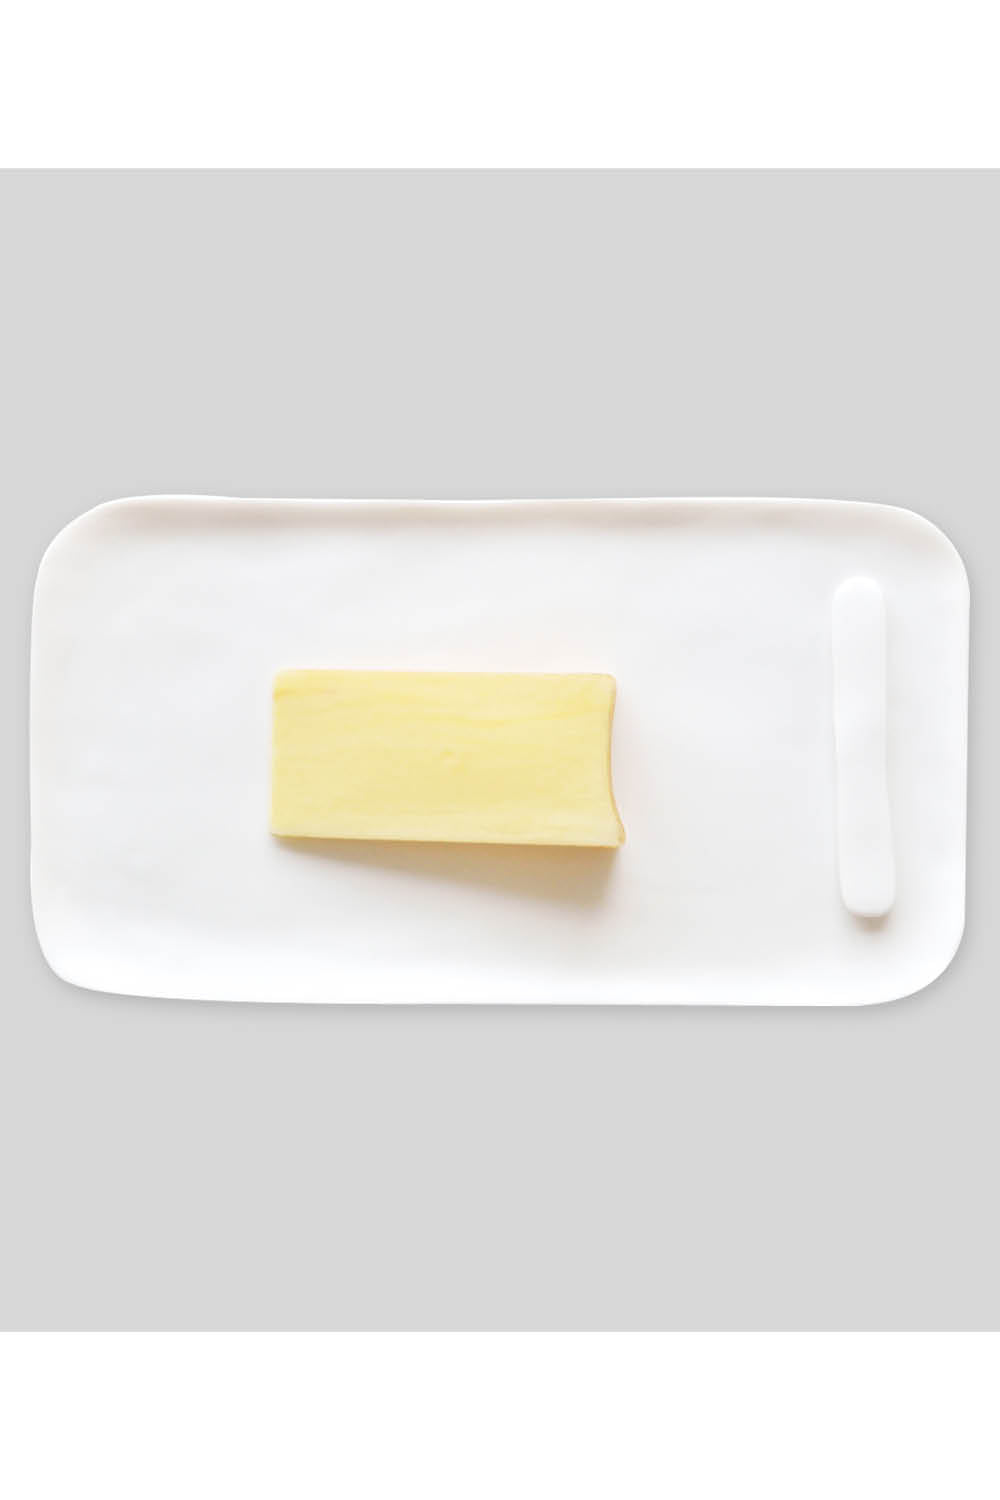 Large Serving Board with Cheese Spreader - White